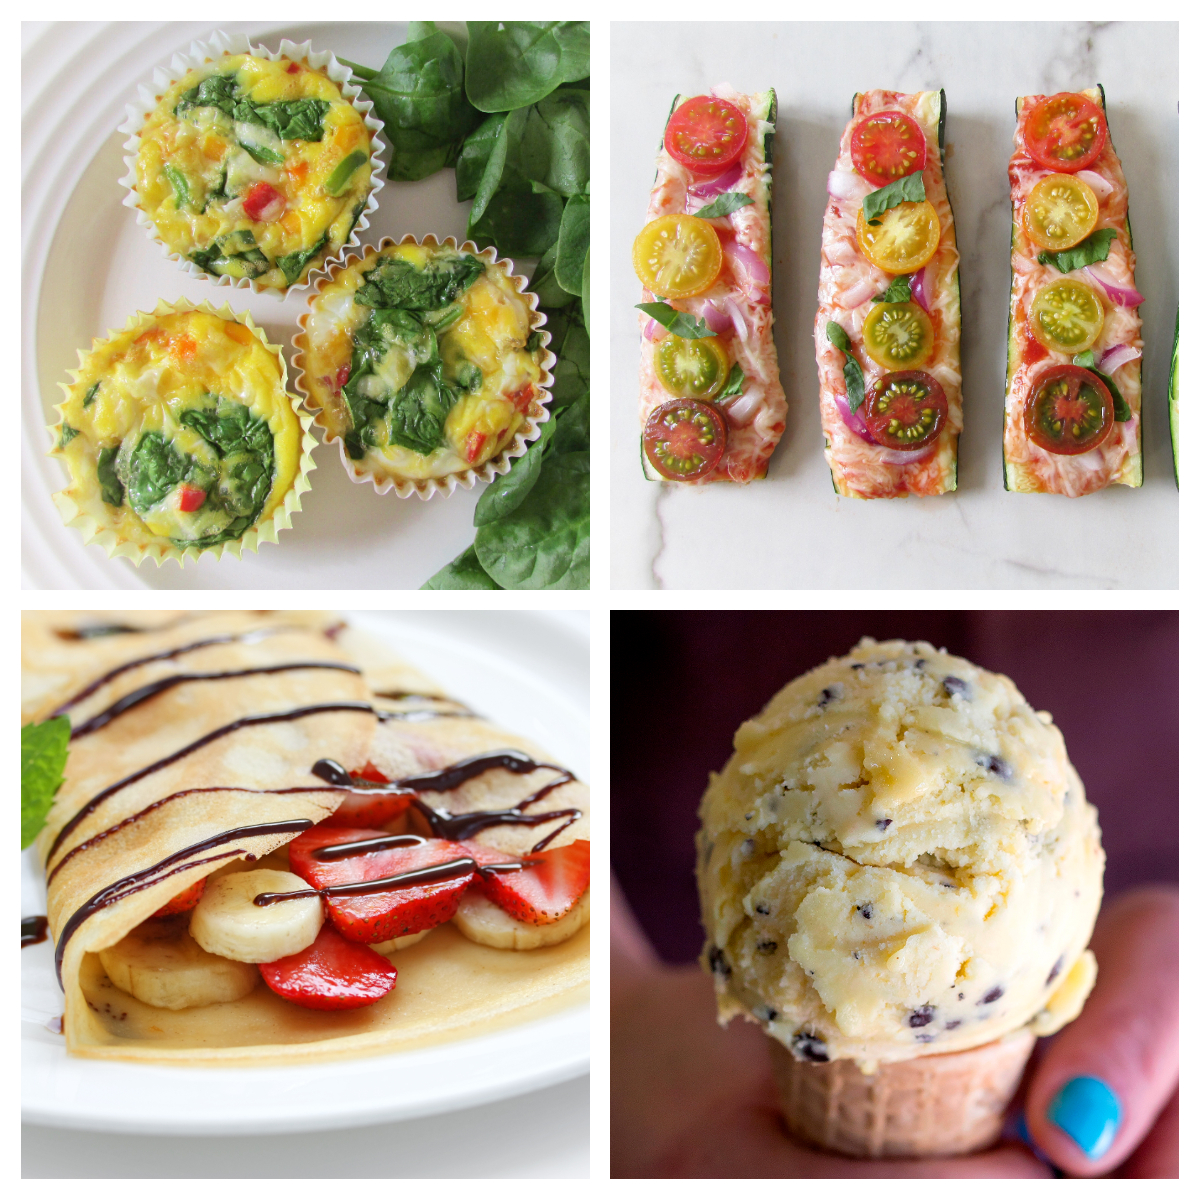 10 Easy Keto-Friendly Vegetarian Recipes